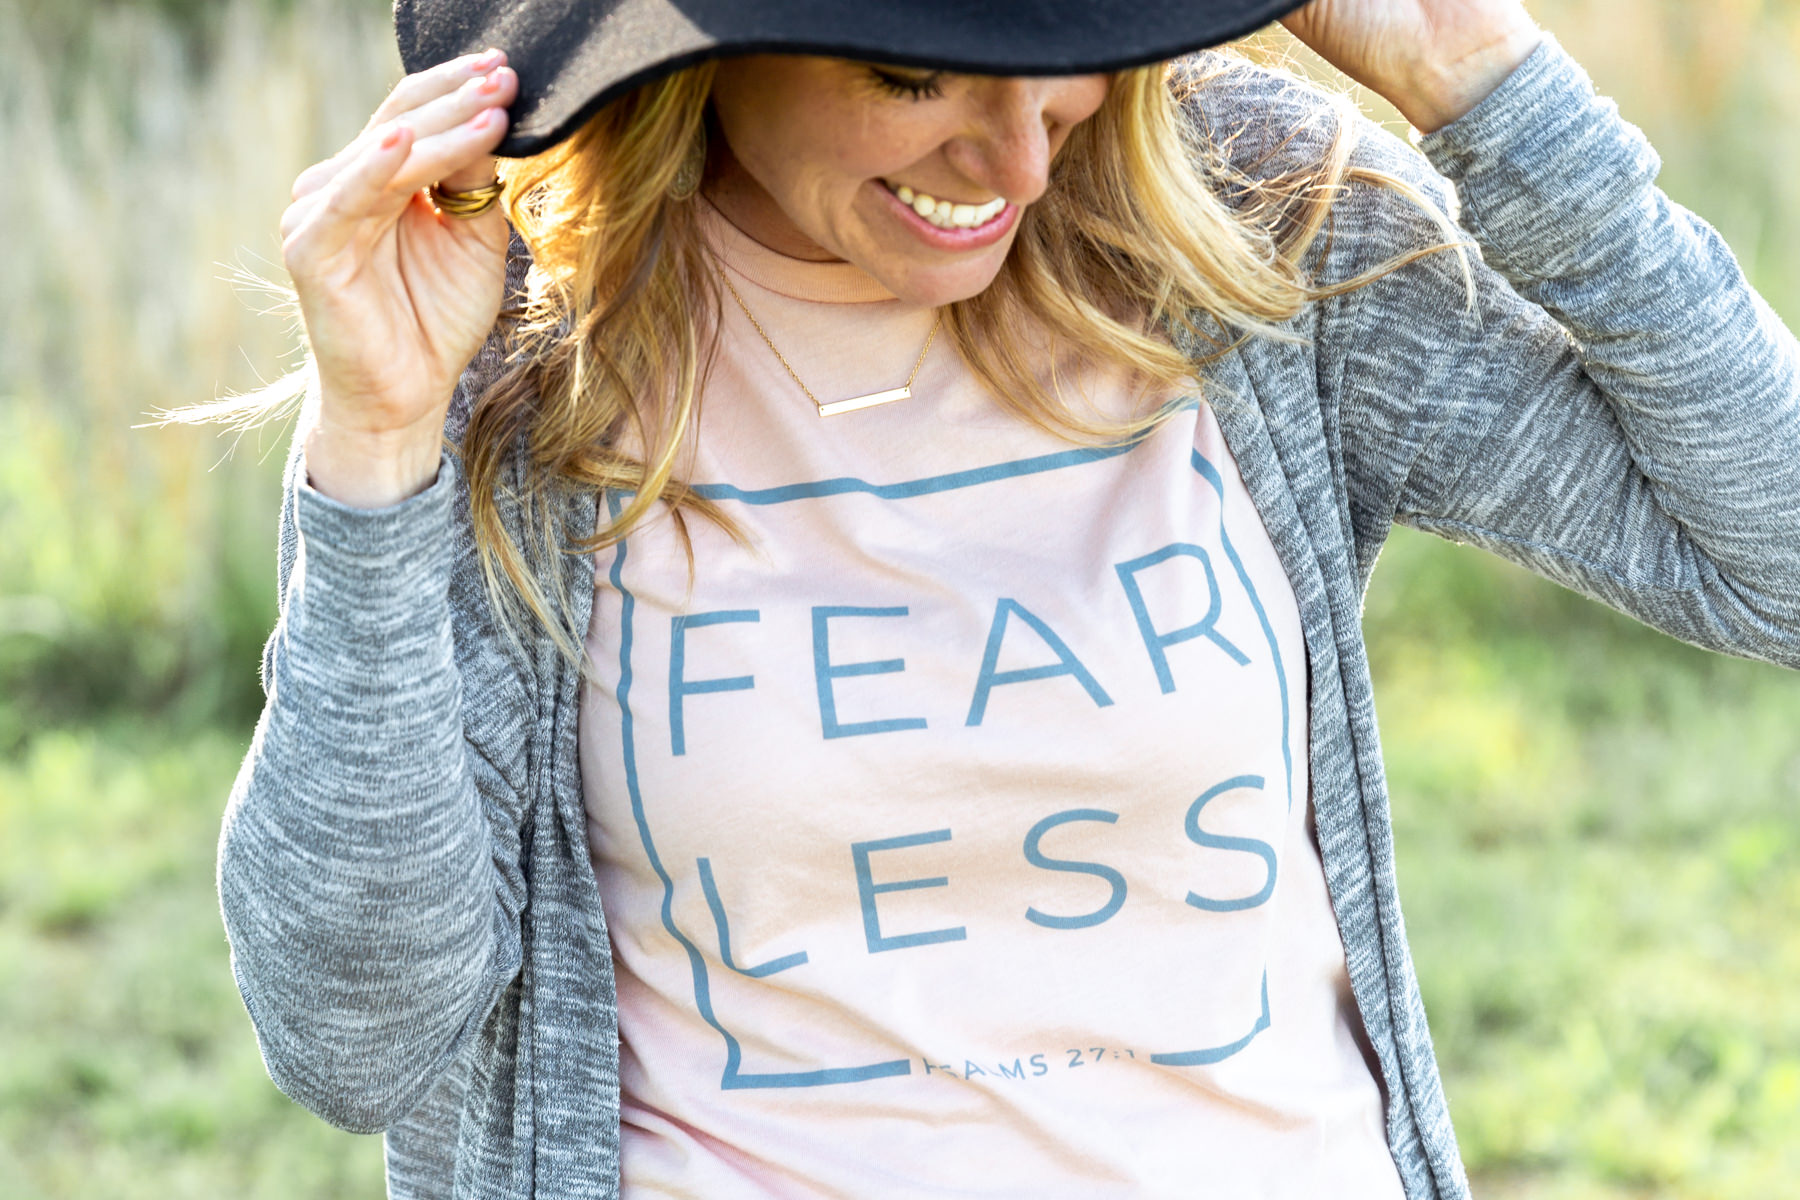 Fearless271 T-shirts